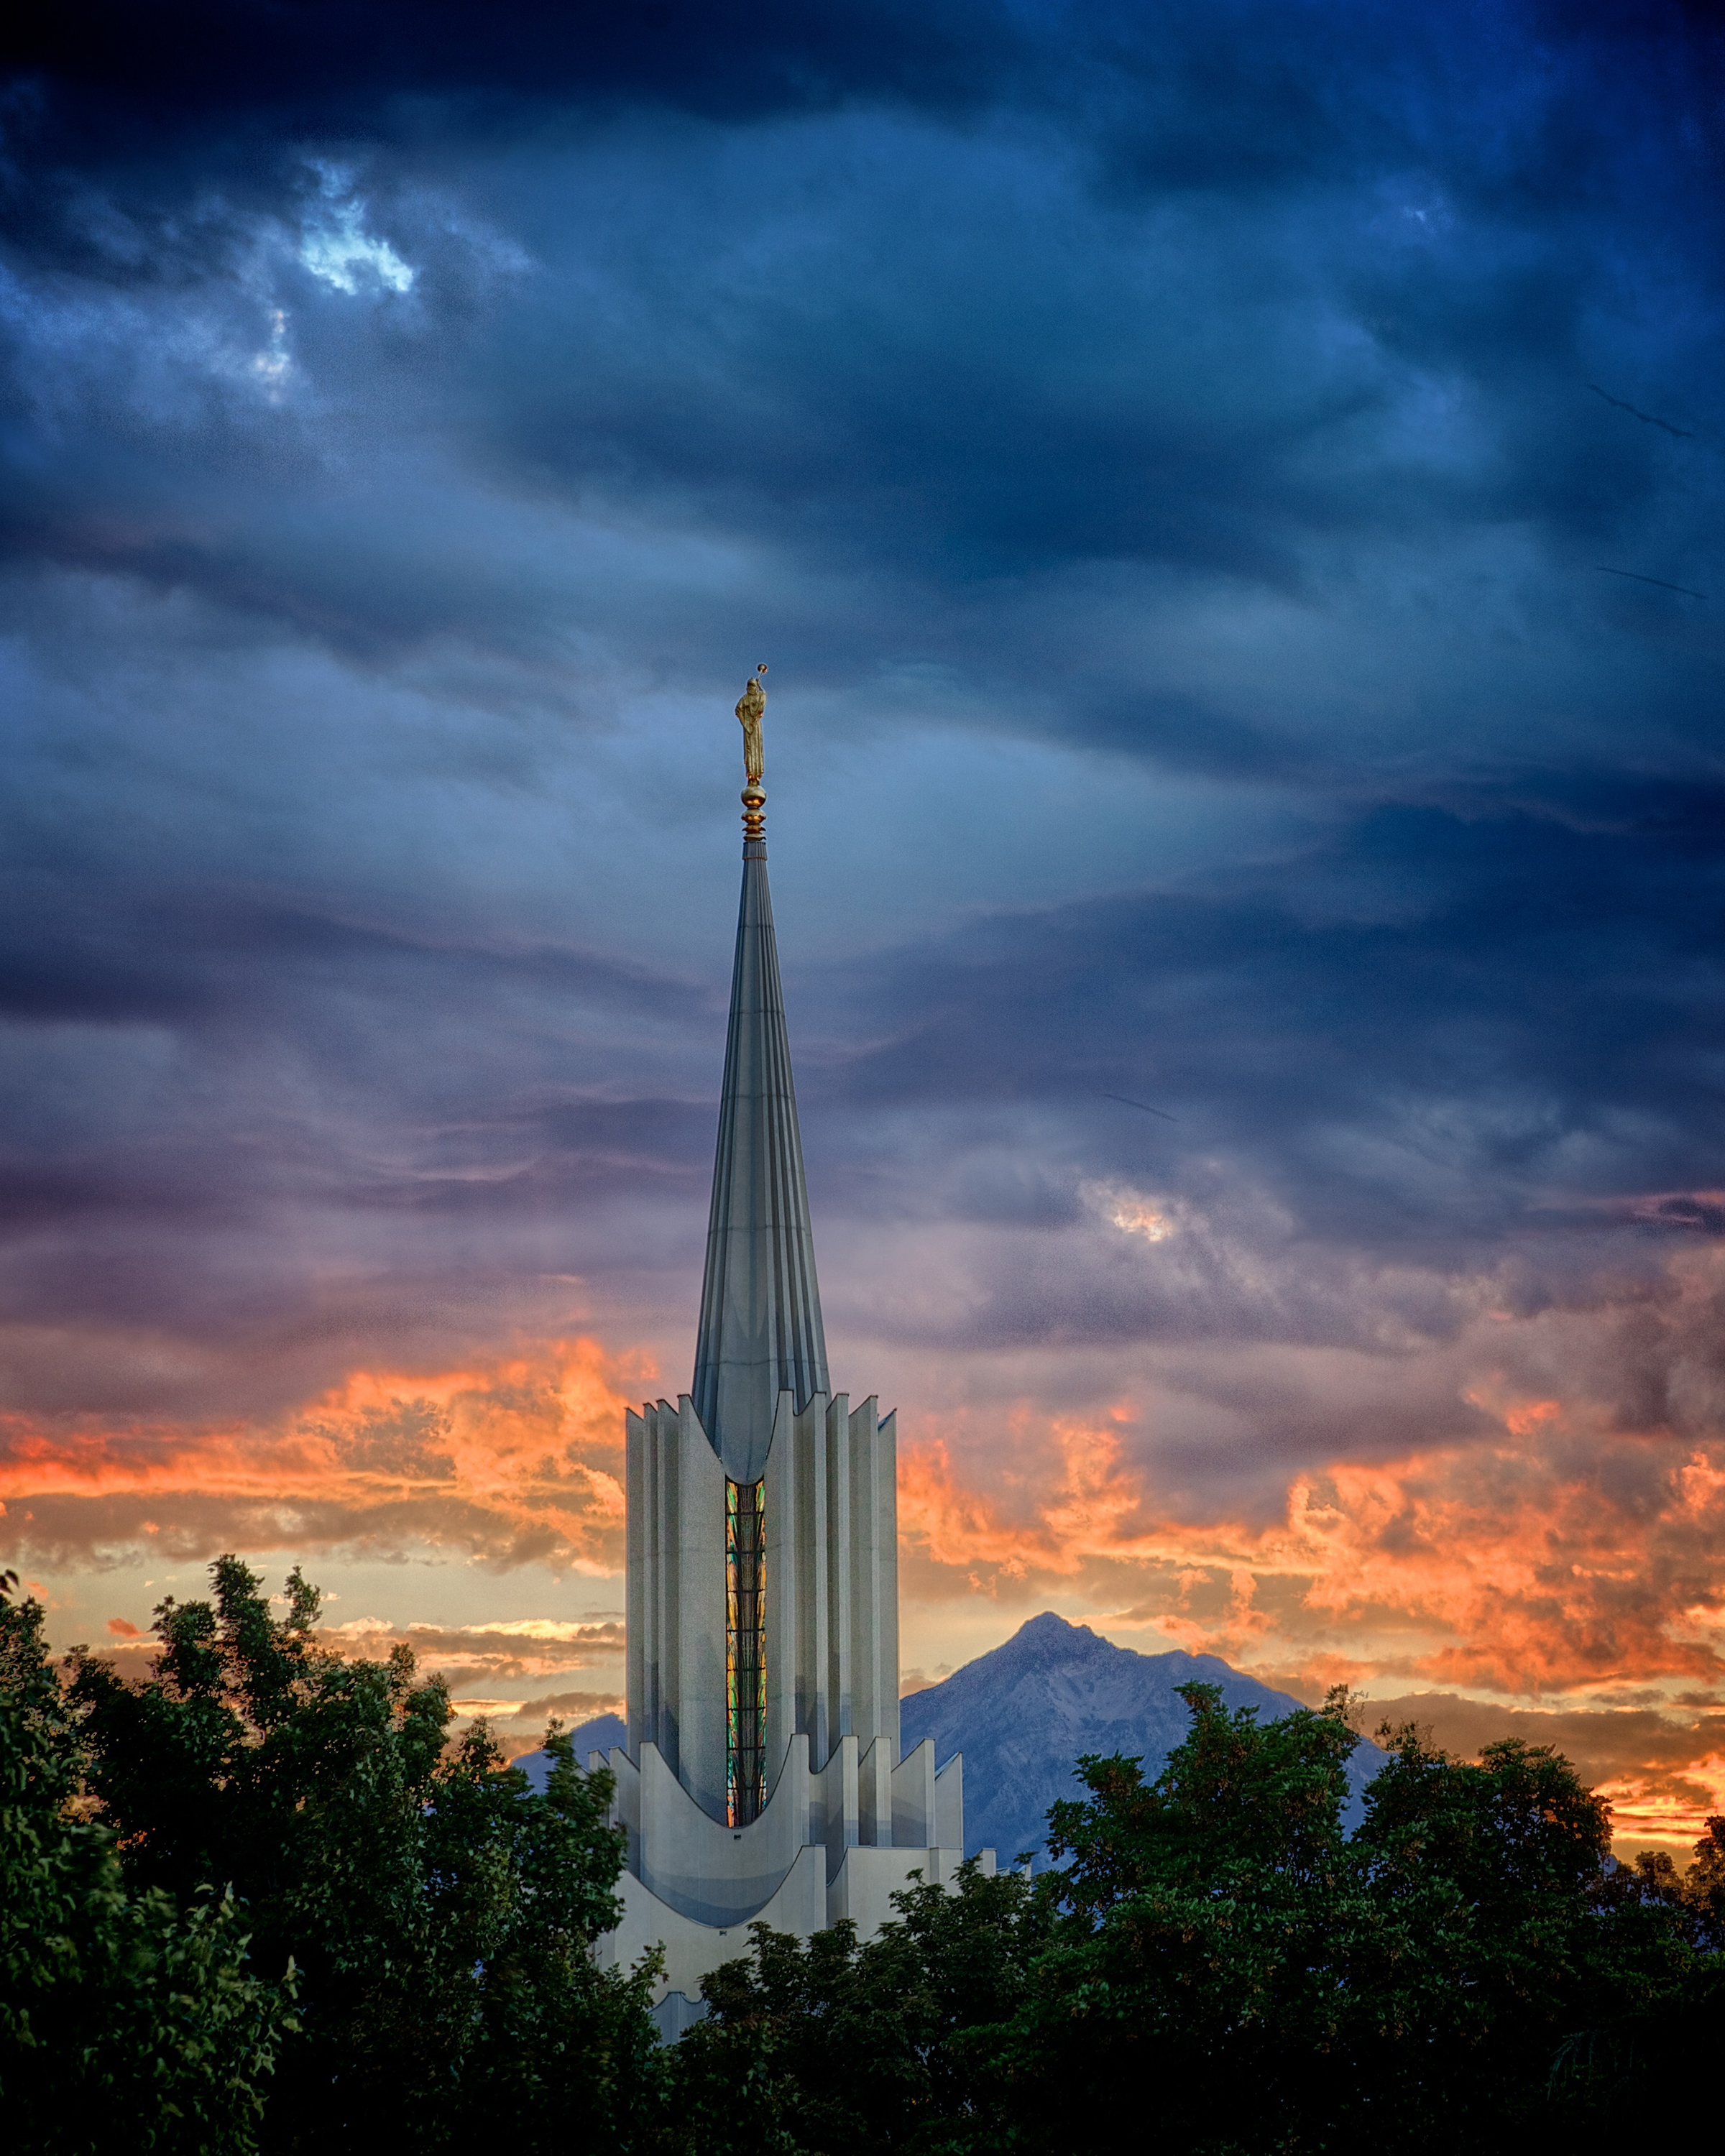 The Spire Of The Jordan River Utah Temple At Night